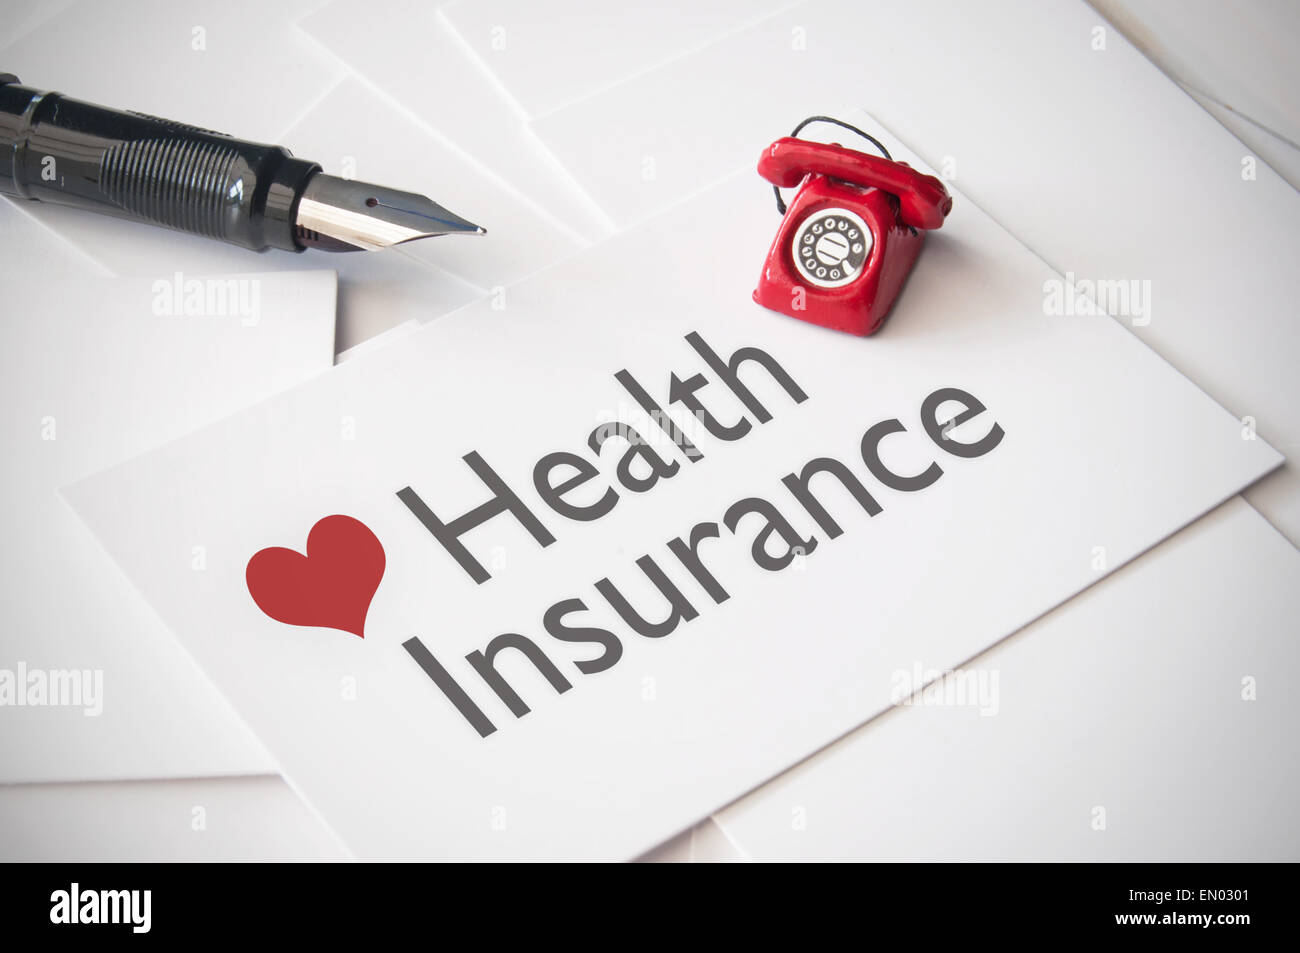 Health insurance concept - Stock Image